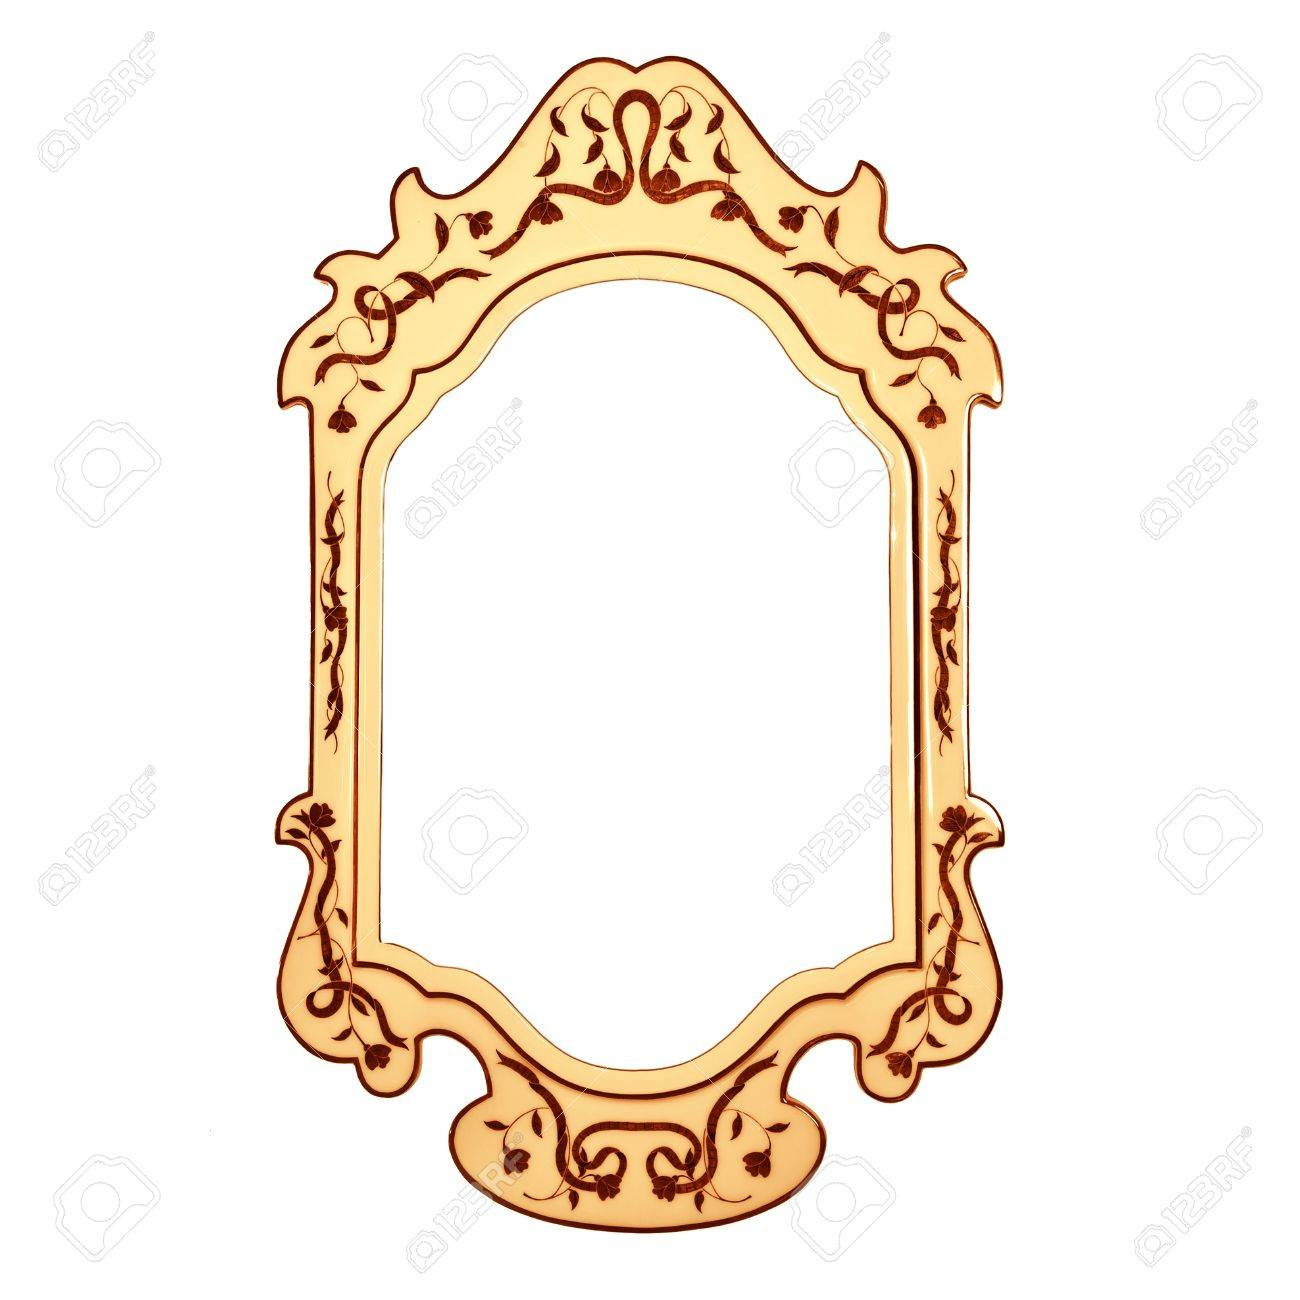 1300x1300 Empty Vintage Mirror Frame Isolated On White Background, Golden